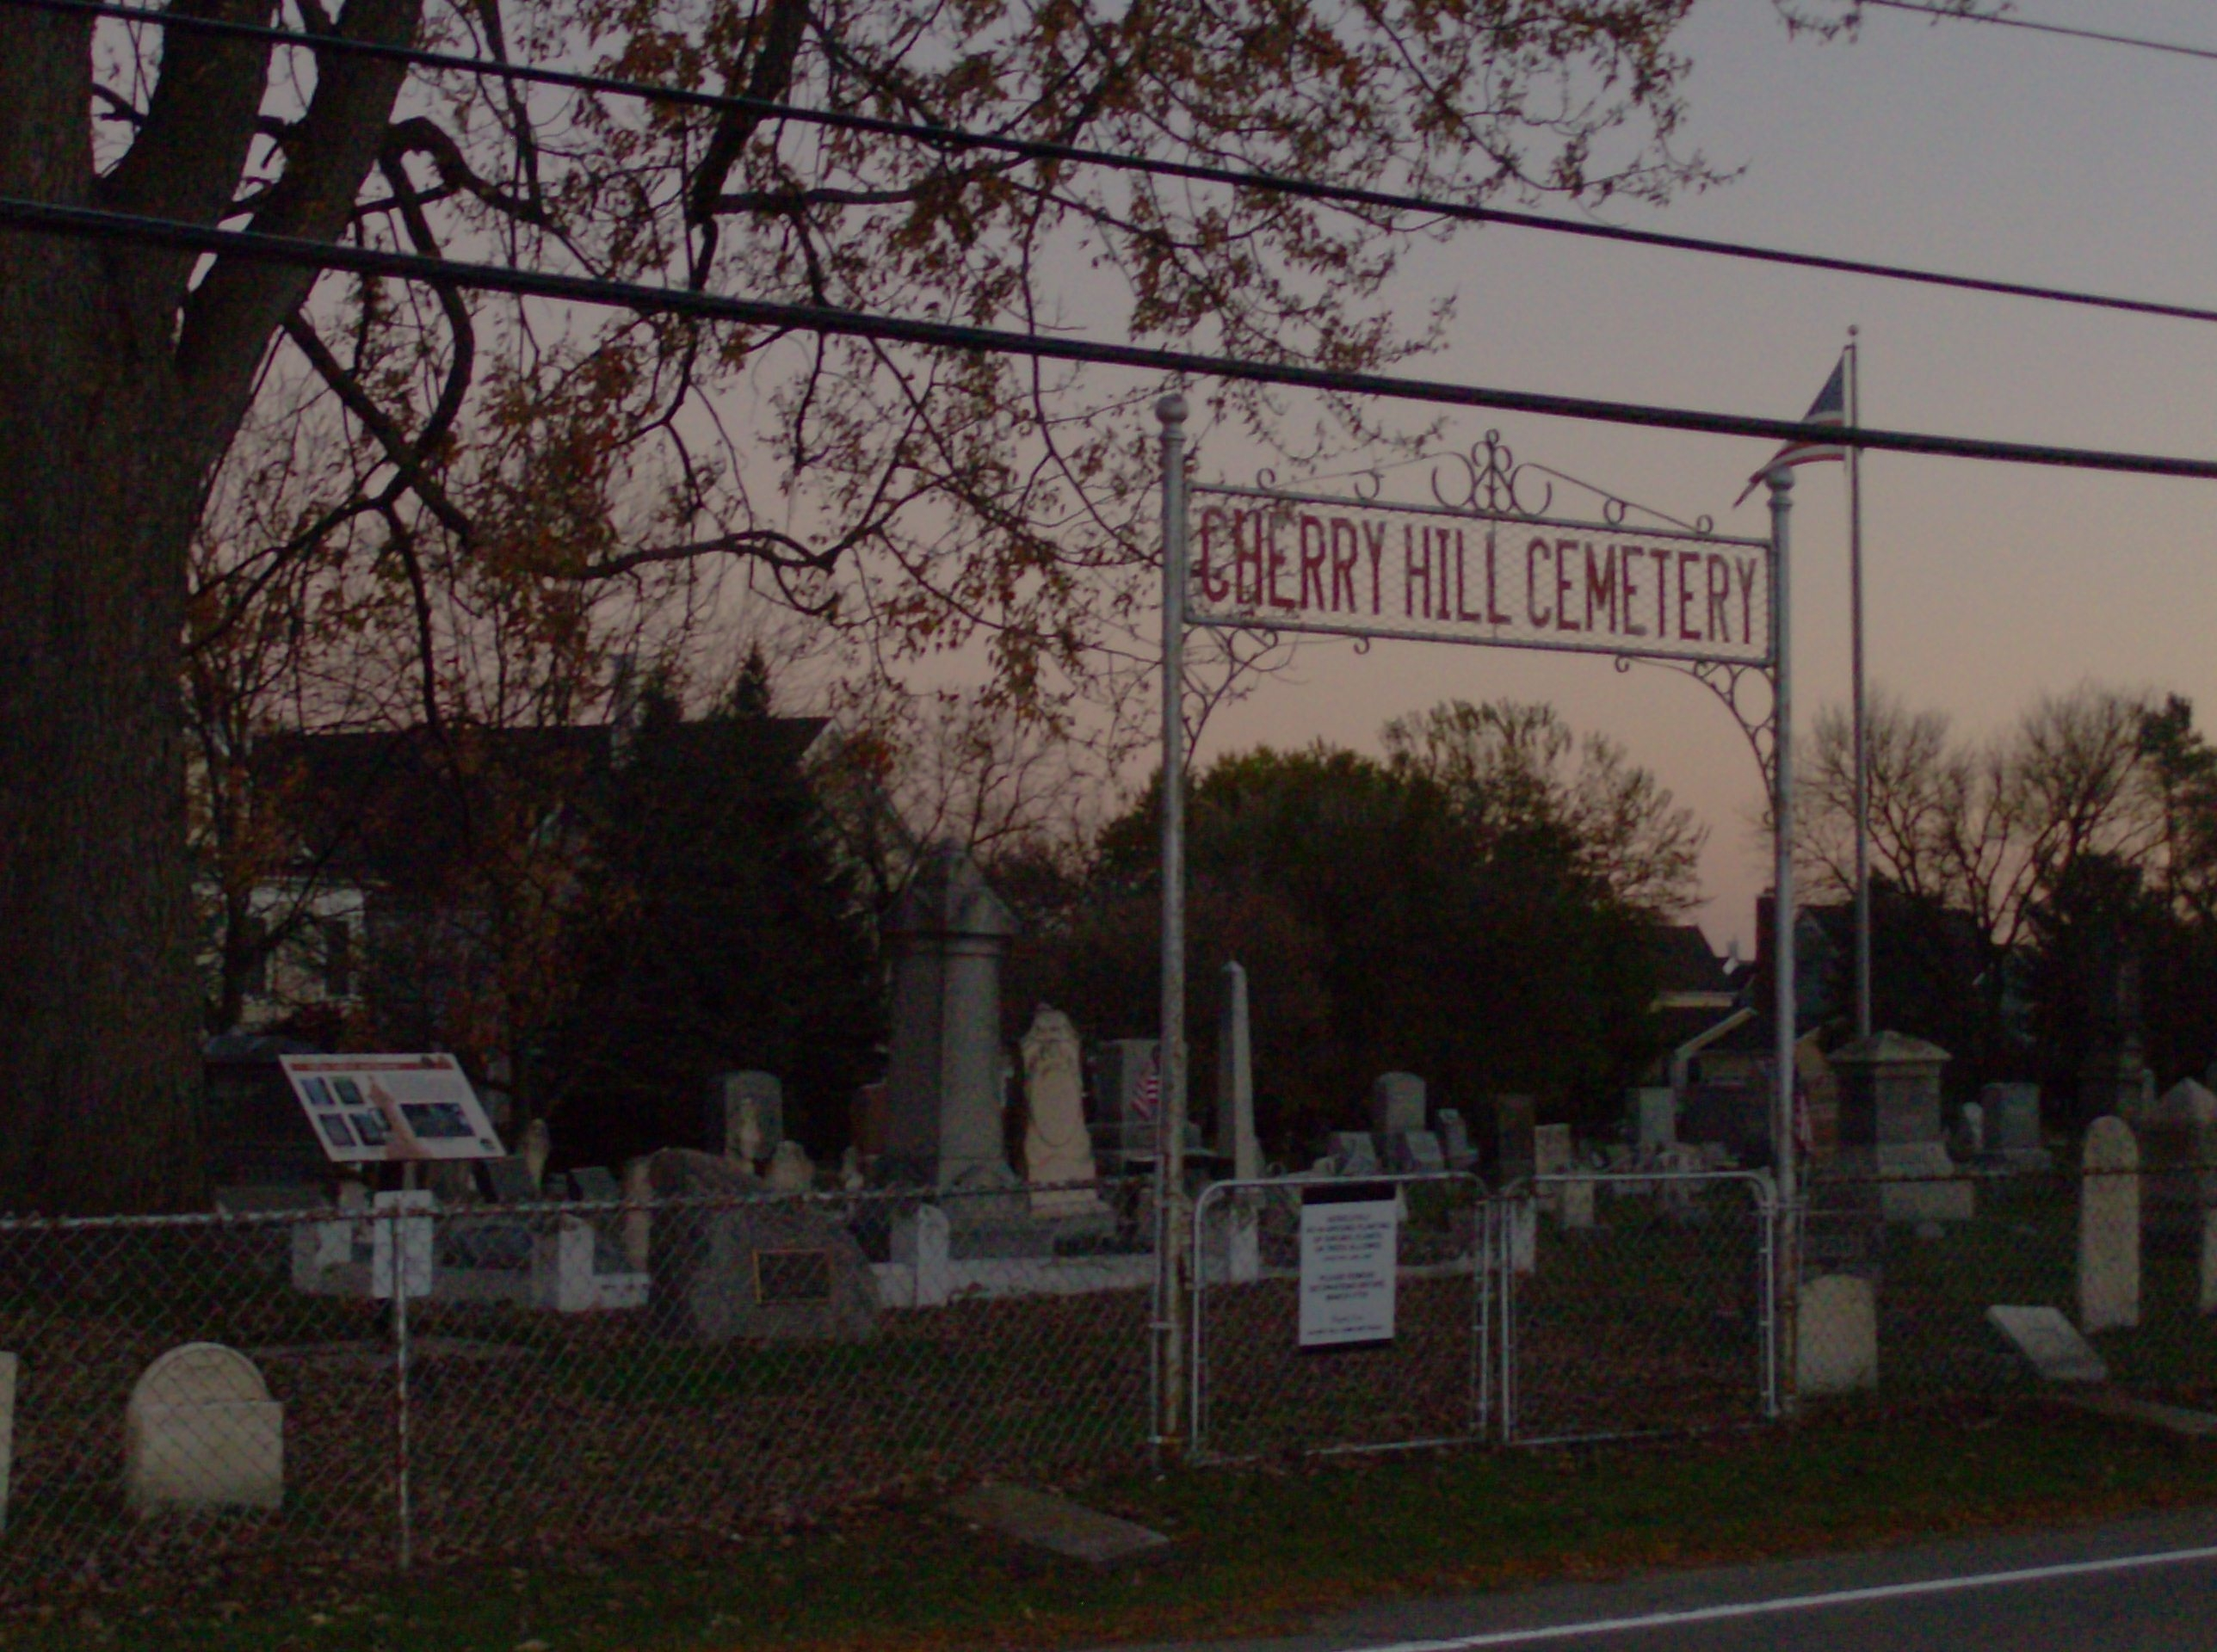 Cherry Hill Cemetery and Marker